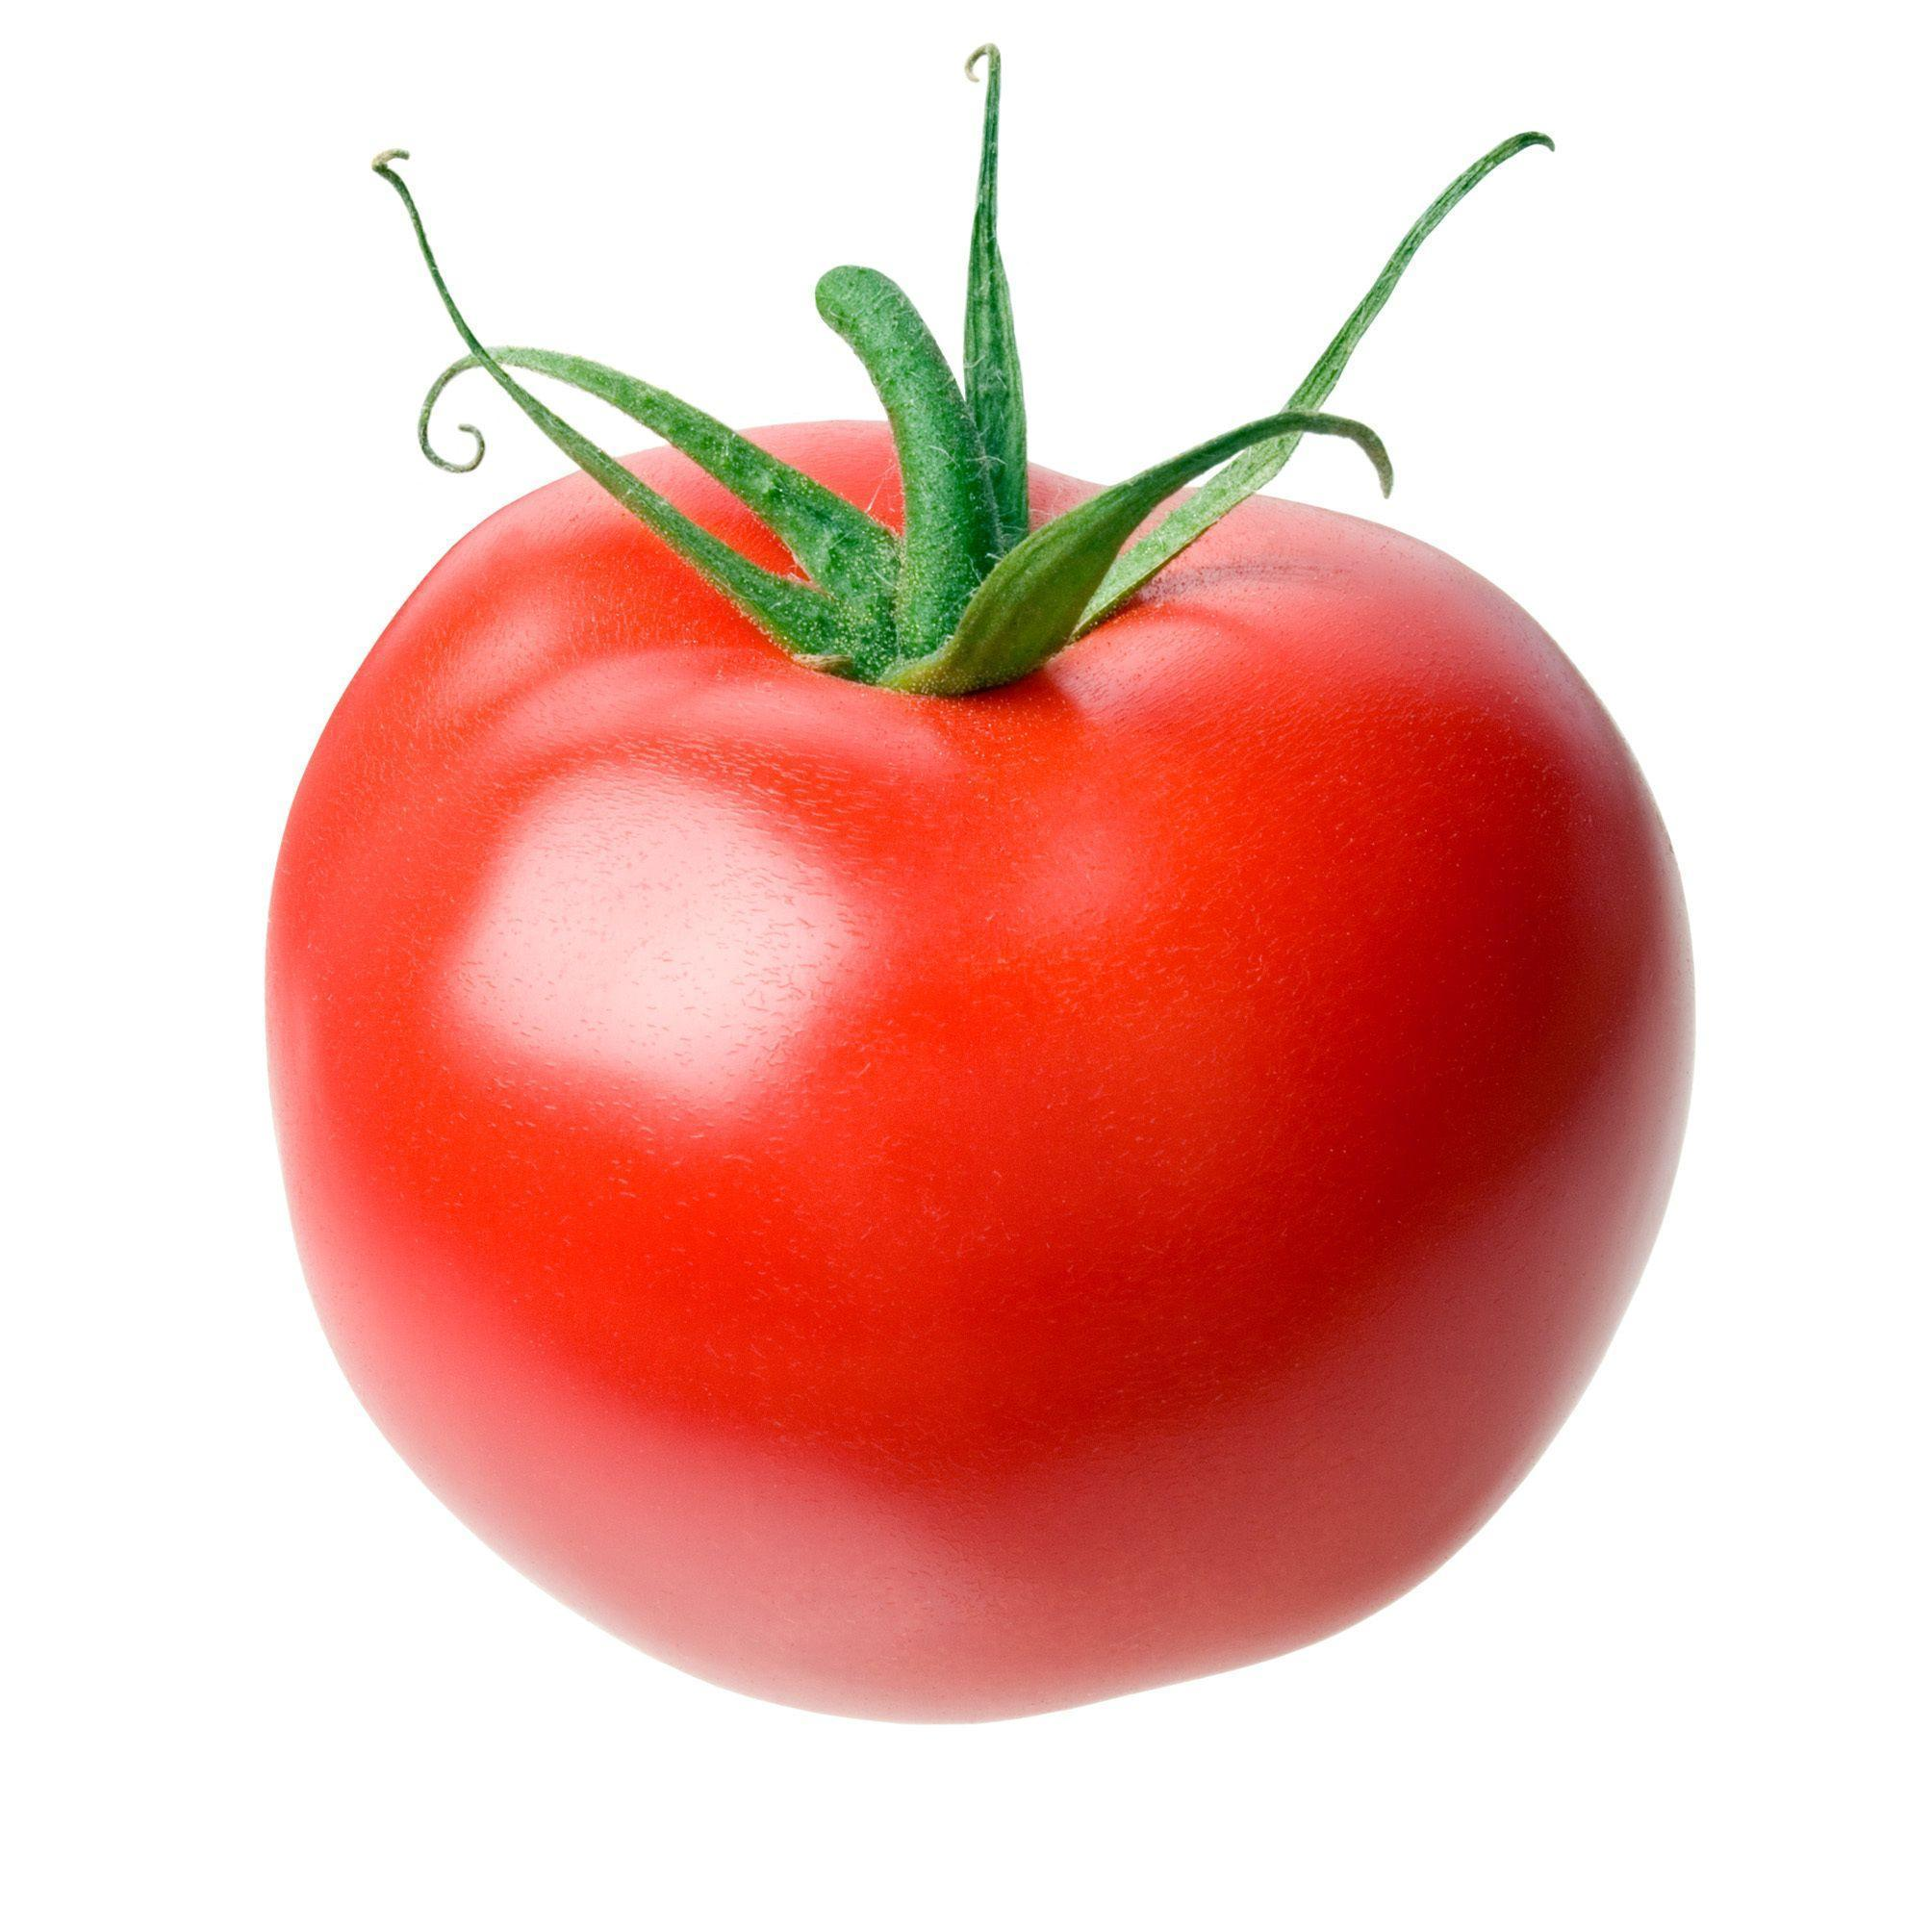 High Quality Tomato Wallpapers